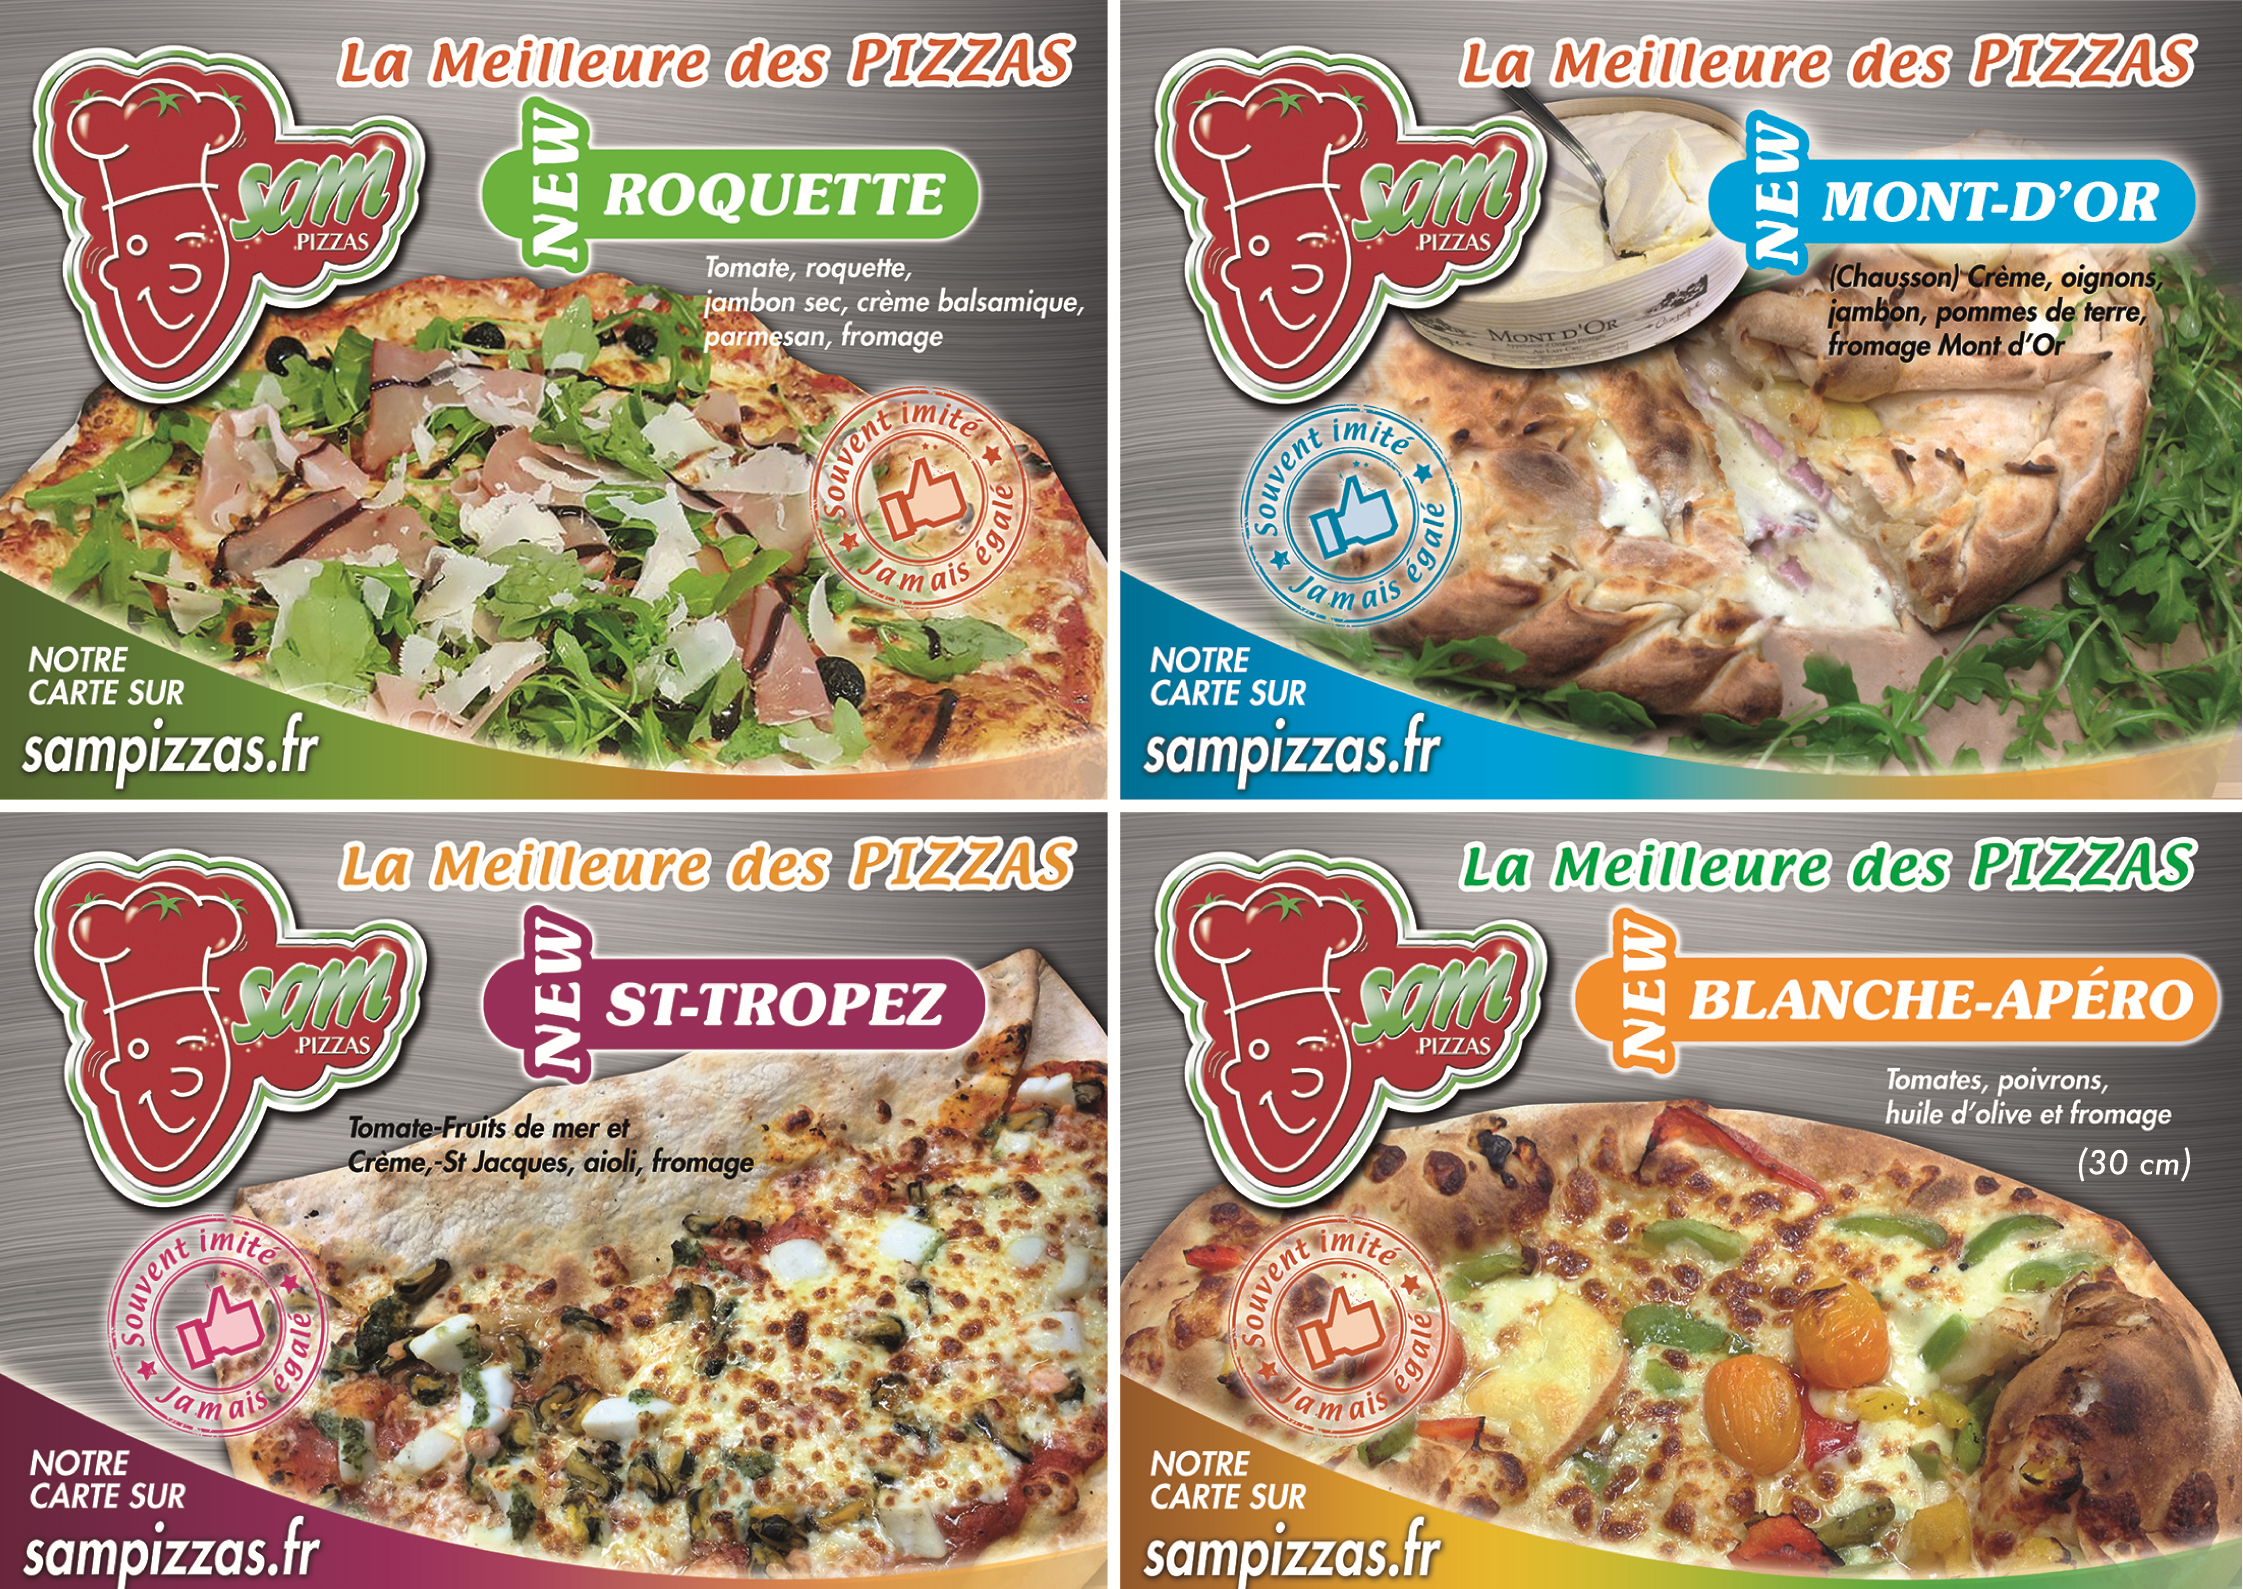 SAMPIZZAS Nouvelles pizzas SUGGESTION NOVEMBRE 2015